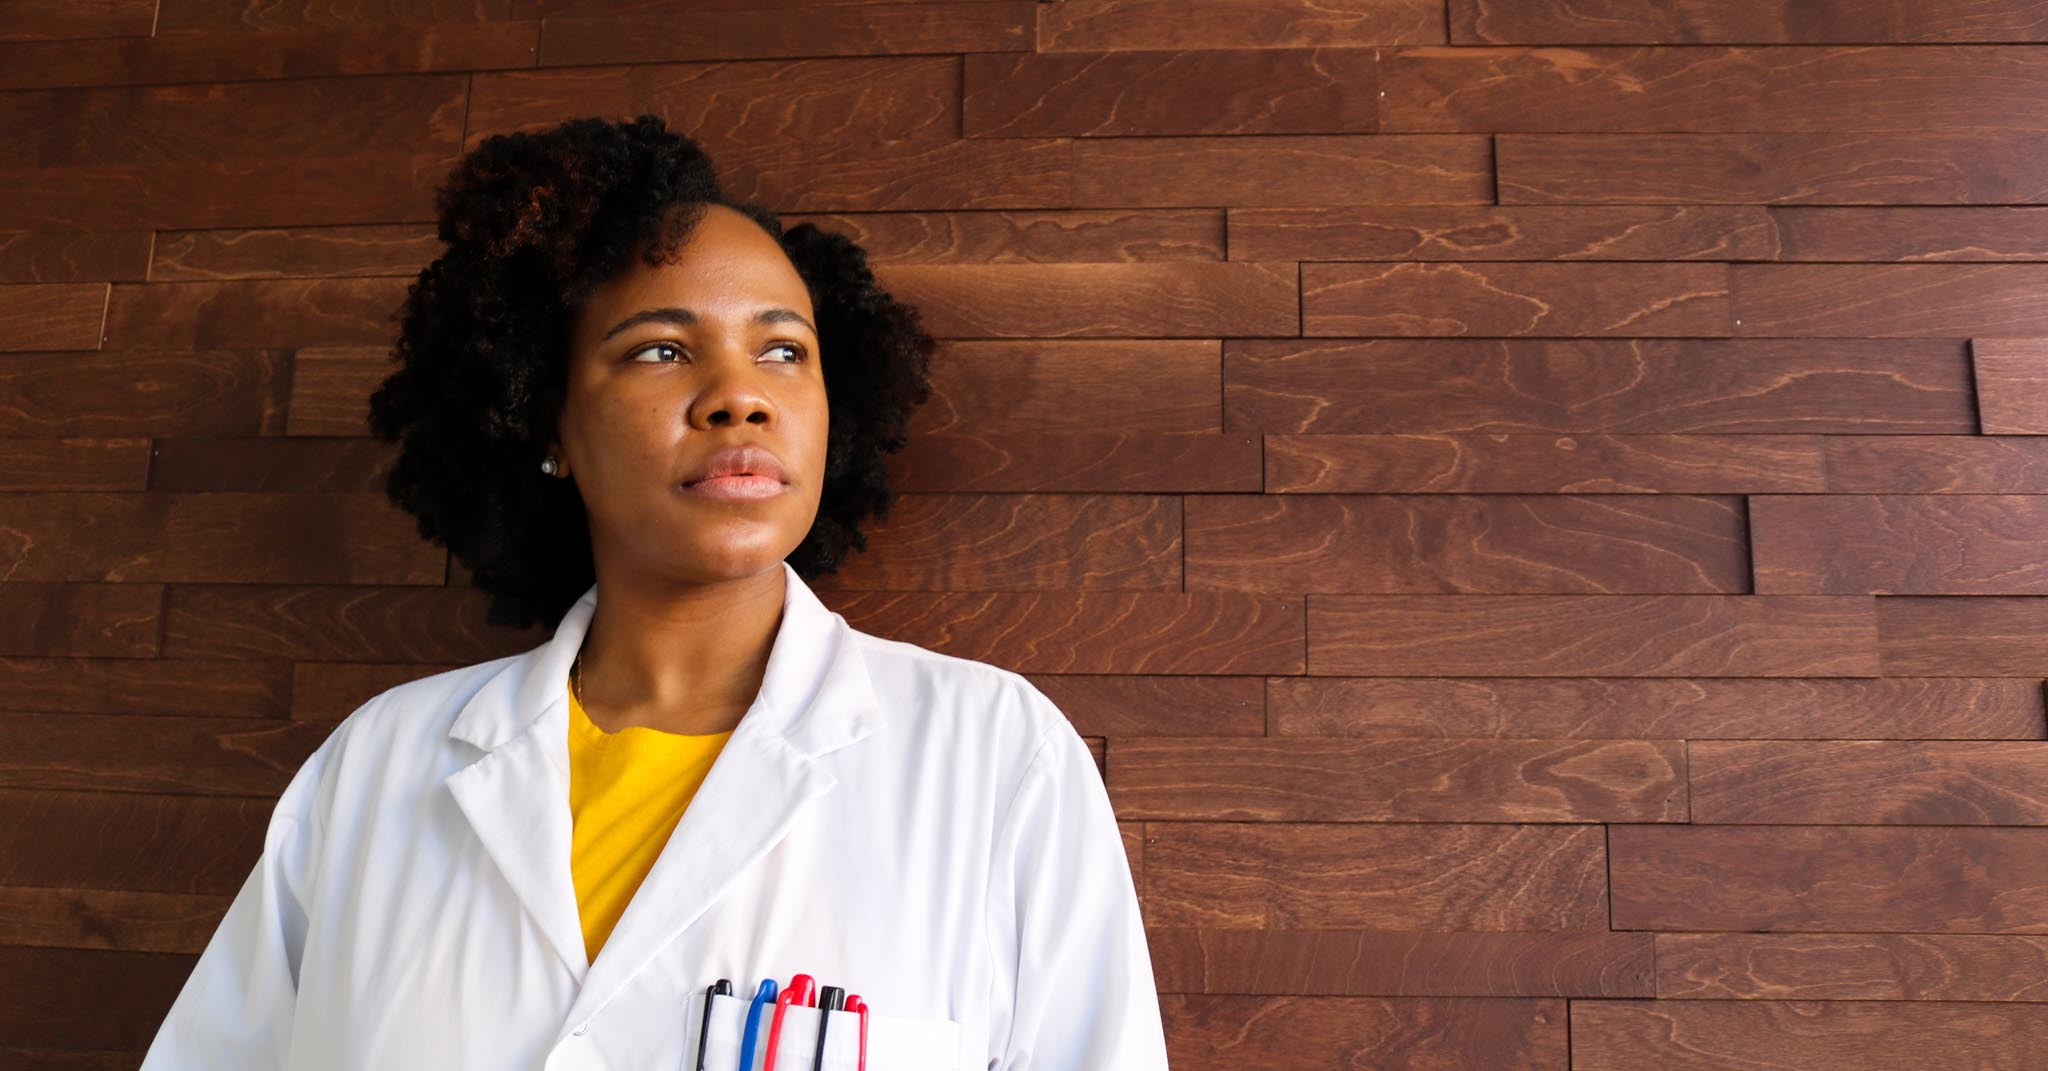 Terramera scientist shares her story as a Black woman in science